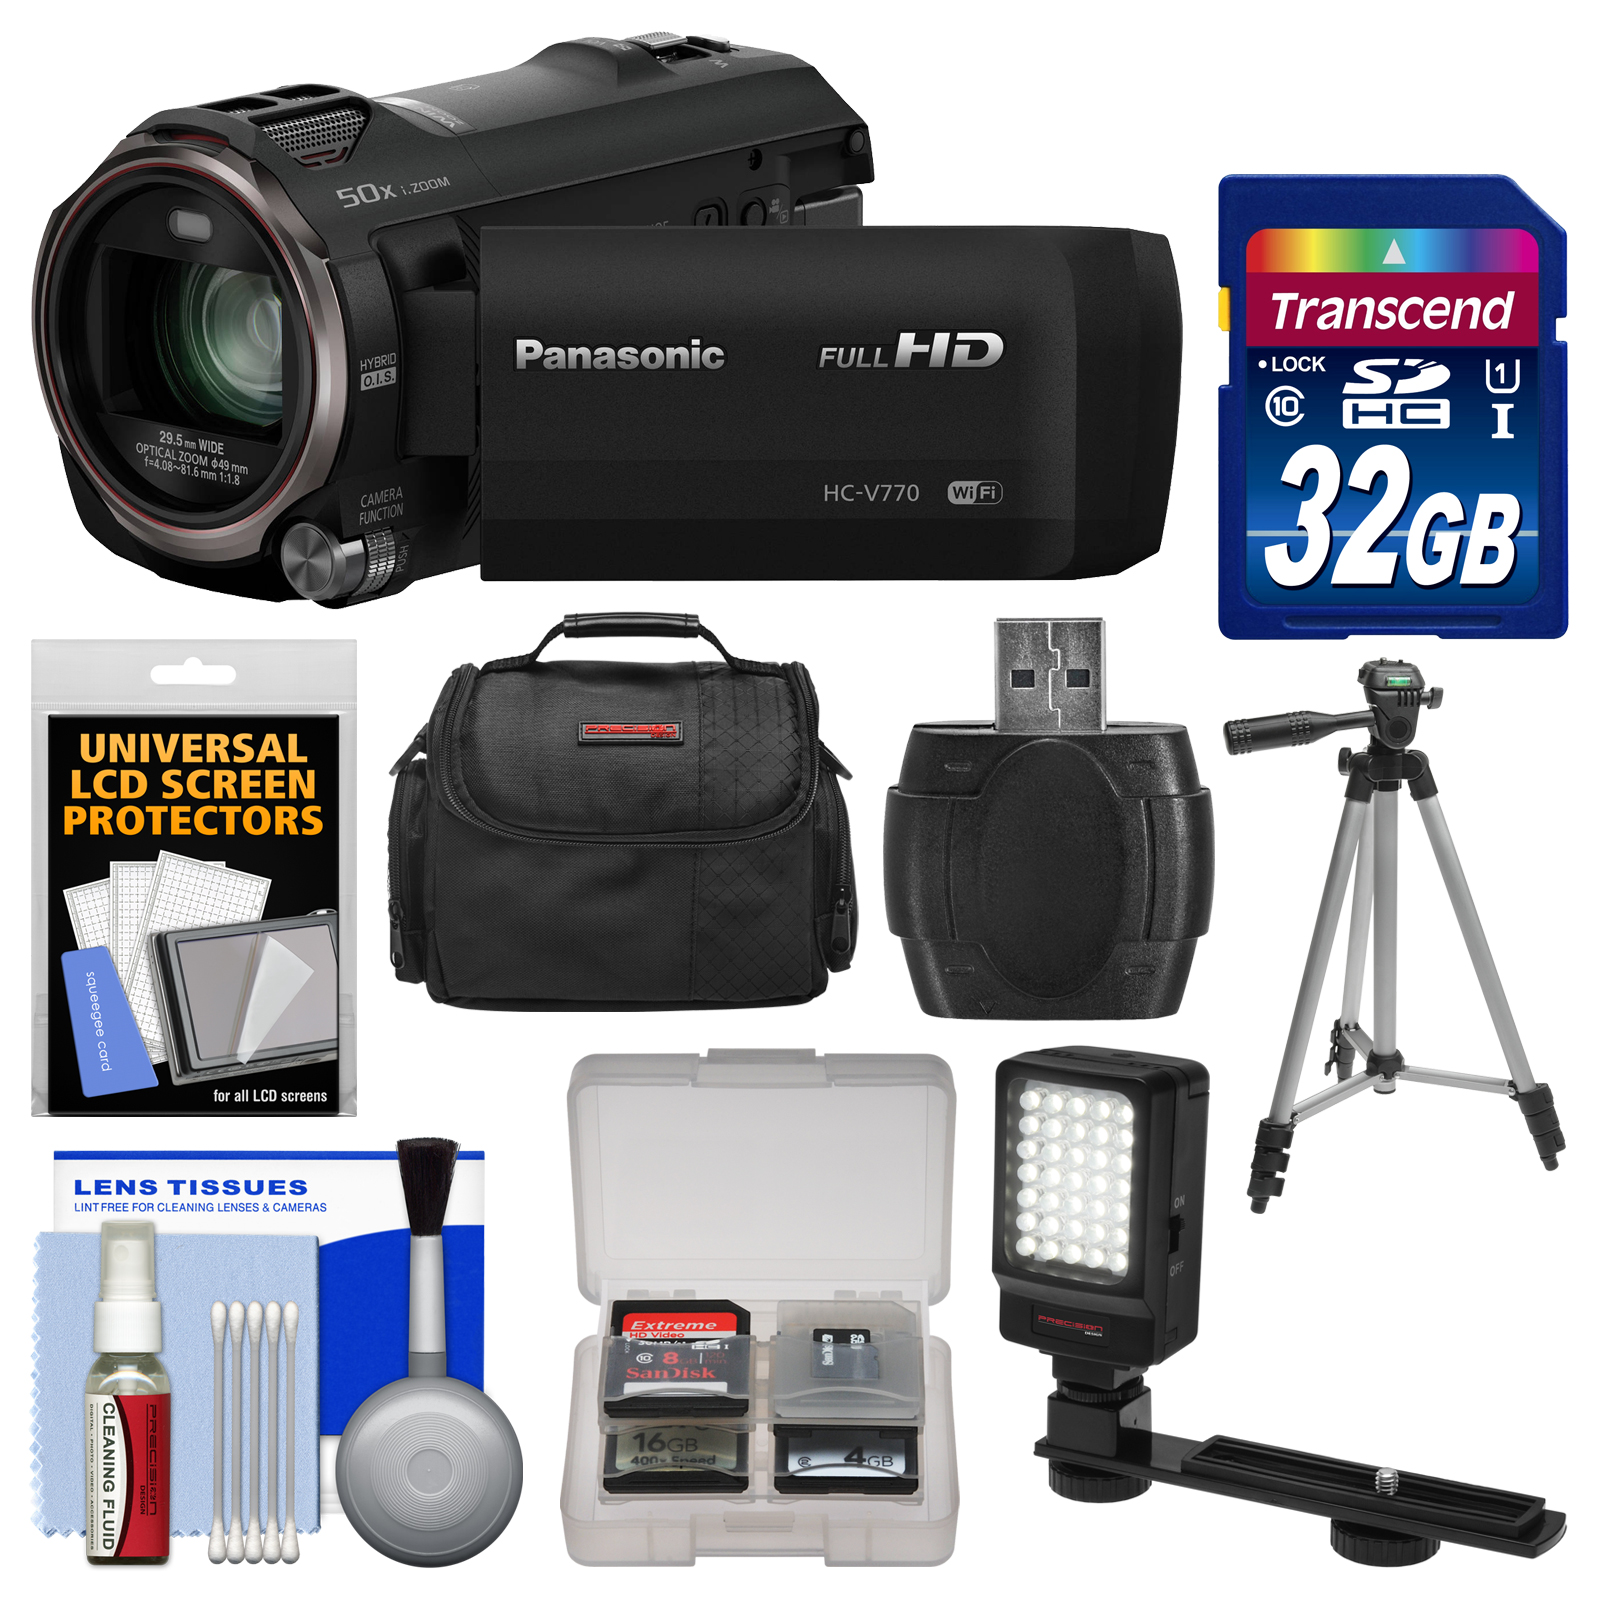 Panasonic HC-V770 Wireless Smartphone Twin Recording Wi-Fi HD Video Camera Camcorder with 32GB Card   Case   LED Light   Tripod   Kit